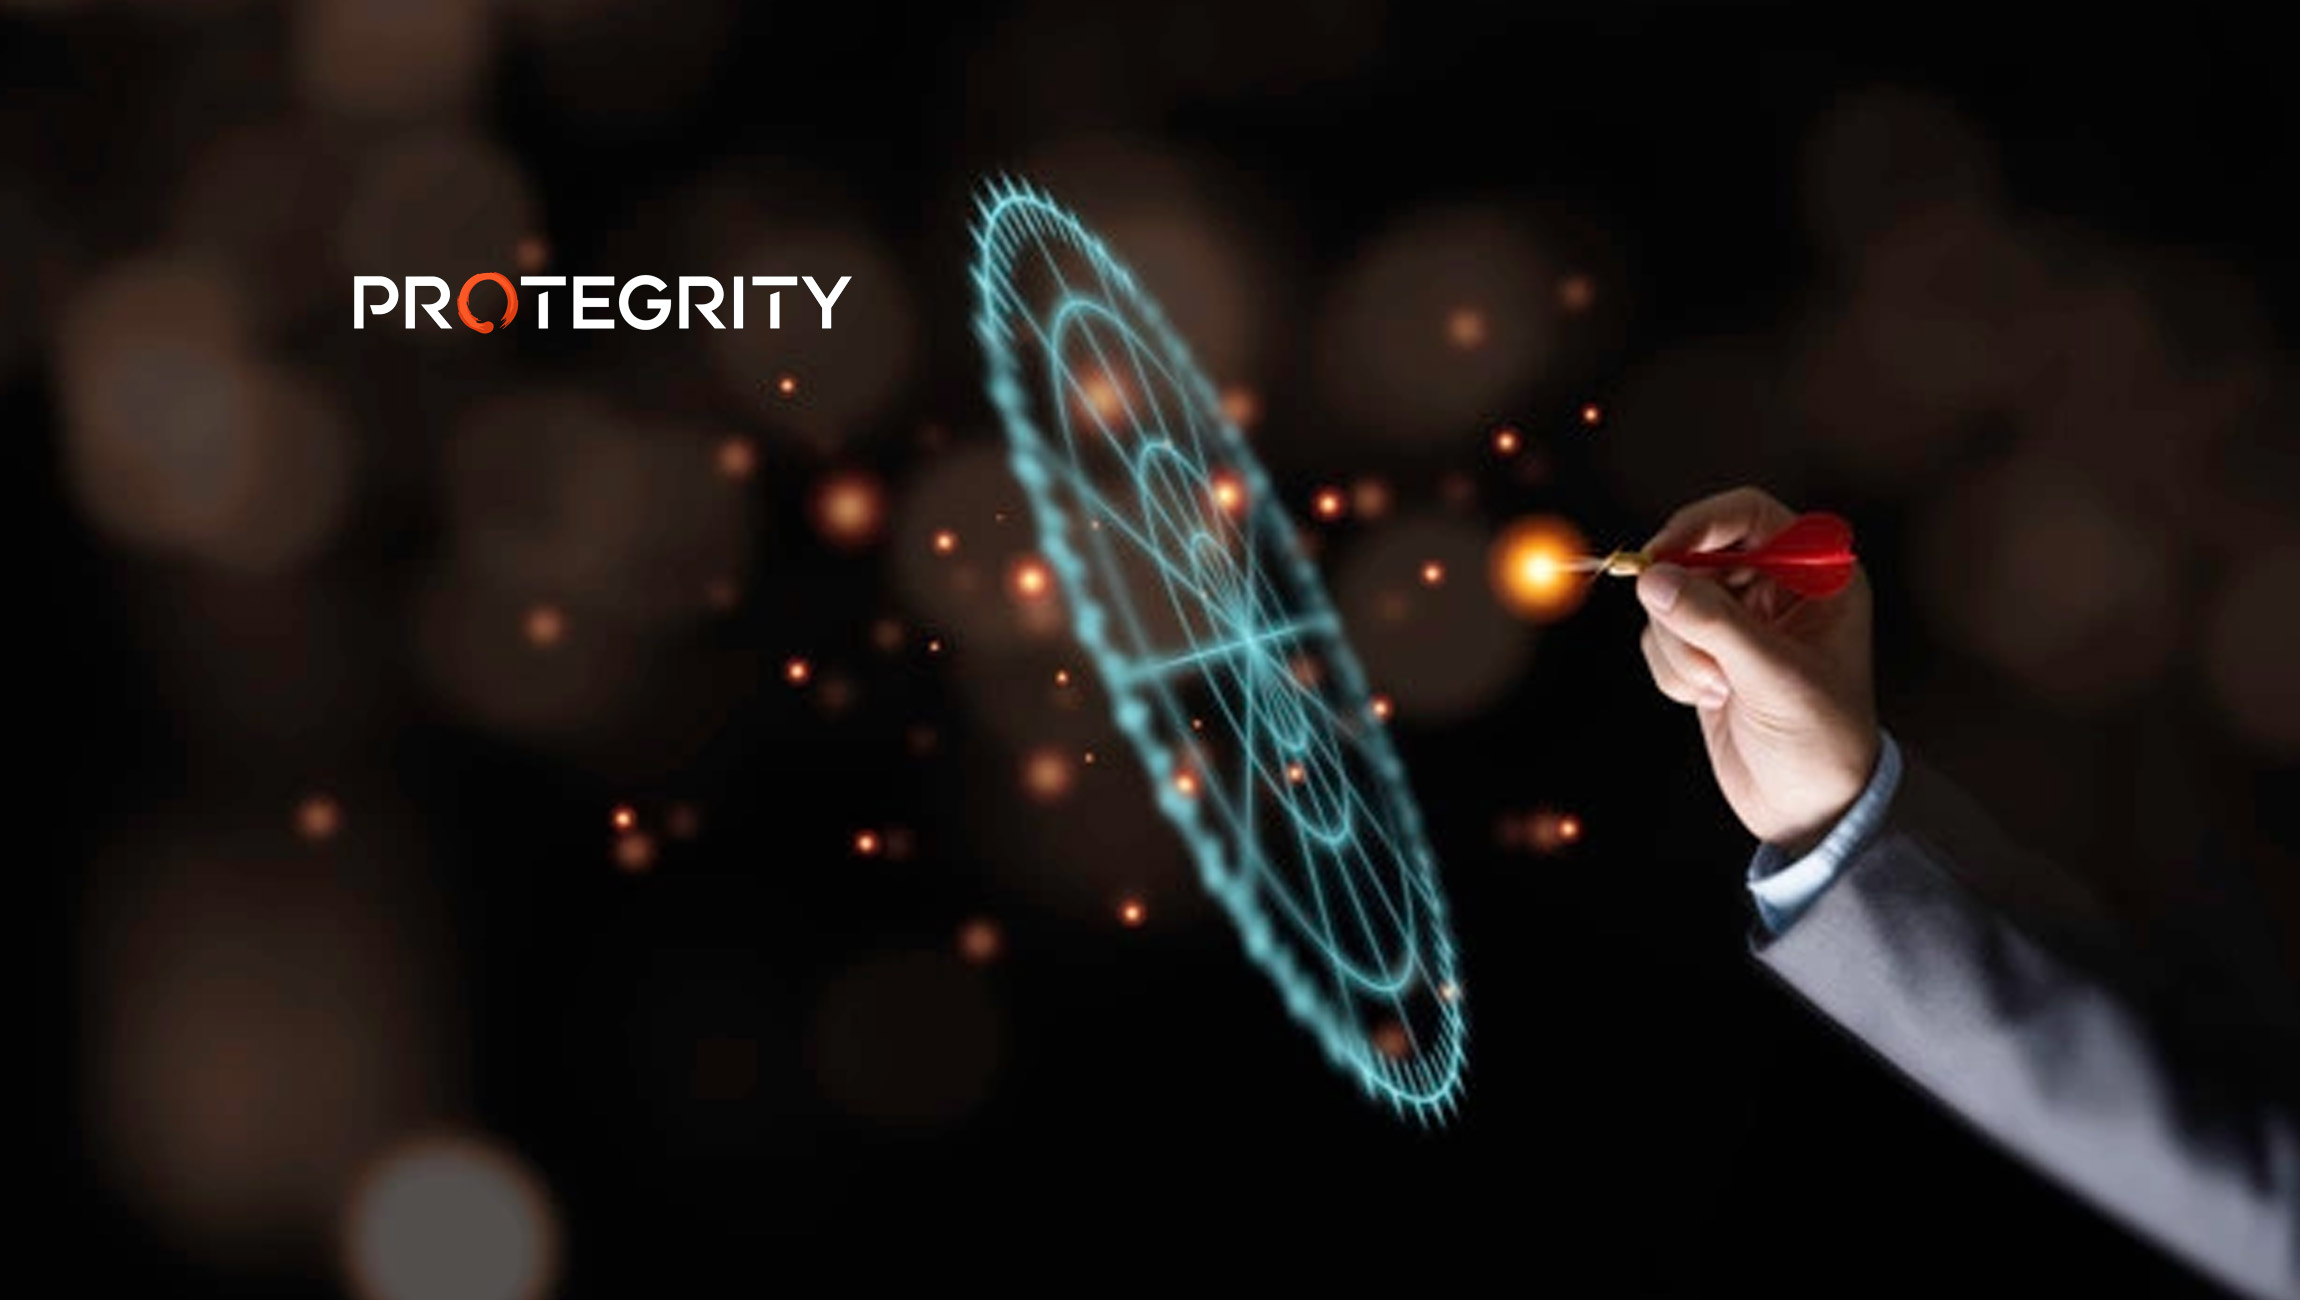 Protegrity Launches Partner Network To Secure Global Innovation In AI, Analytics, and Cloud